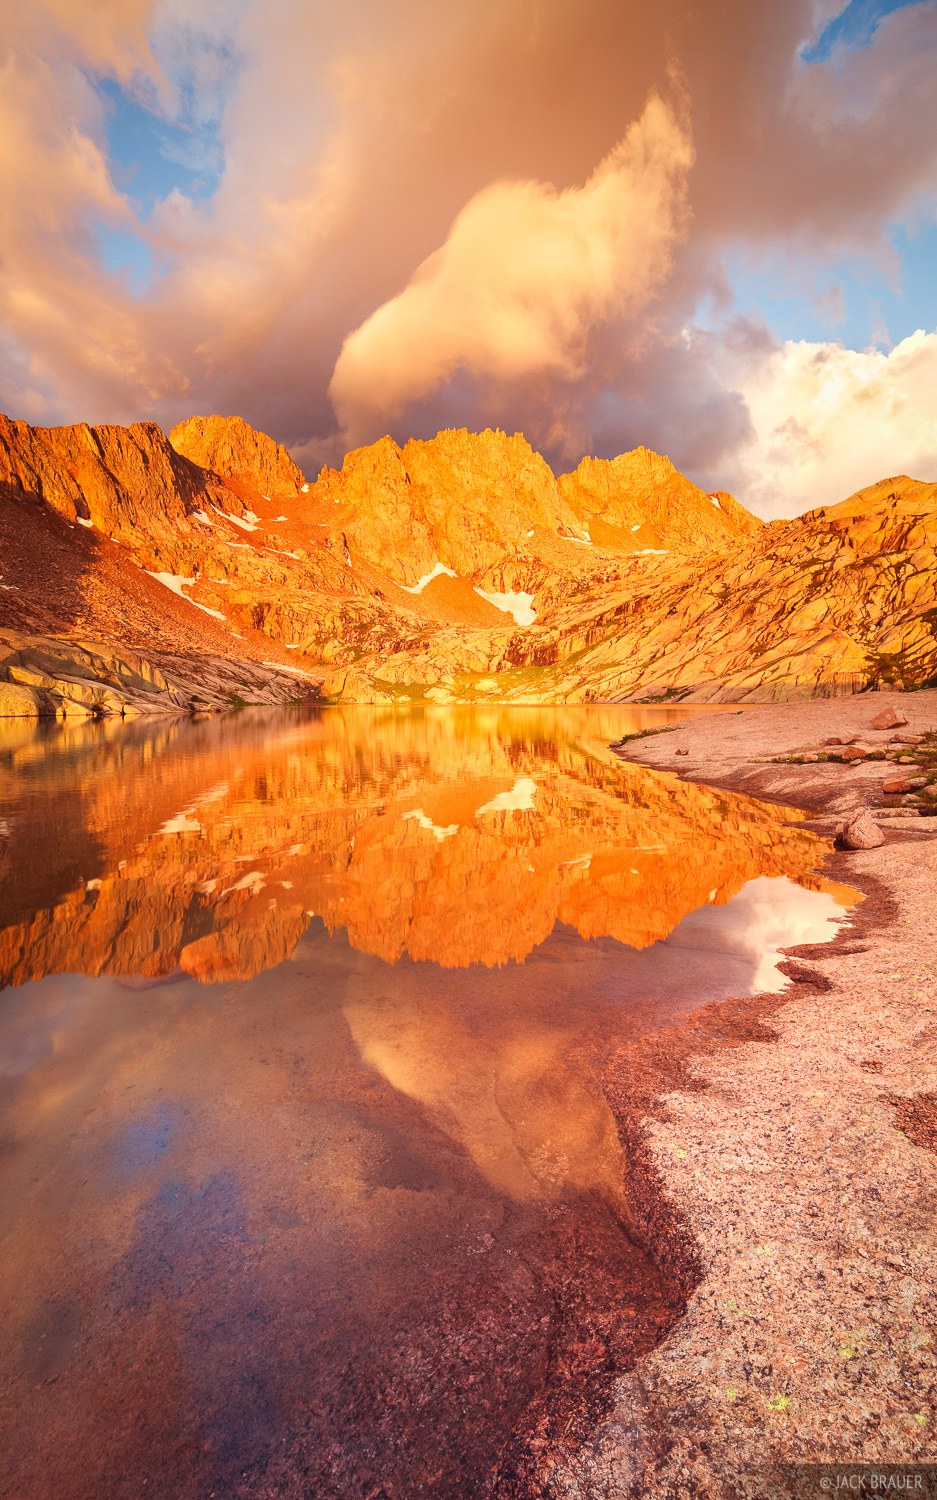 Sunlight Peak, Windom Peak, sunrise, reflection, Weminuche Wilderness, San Juan Mountains, Colorado, photo